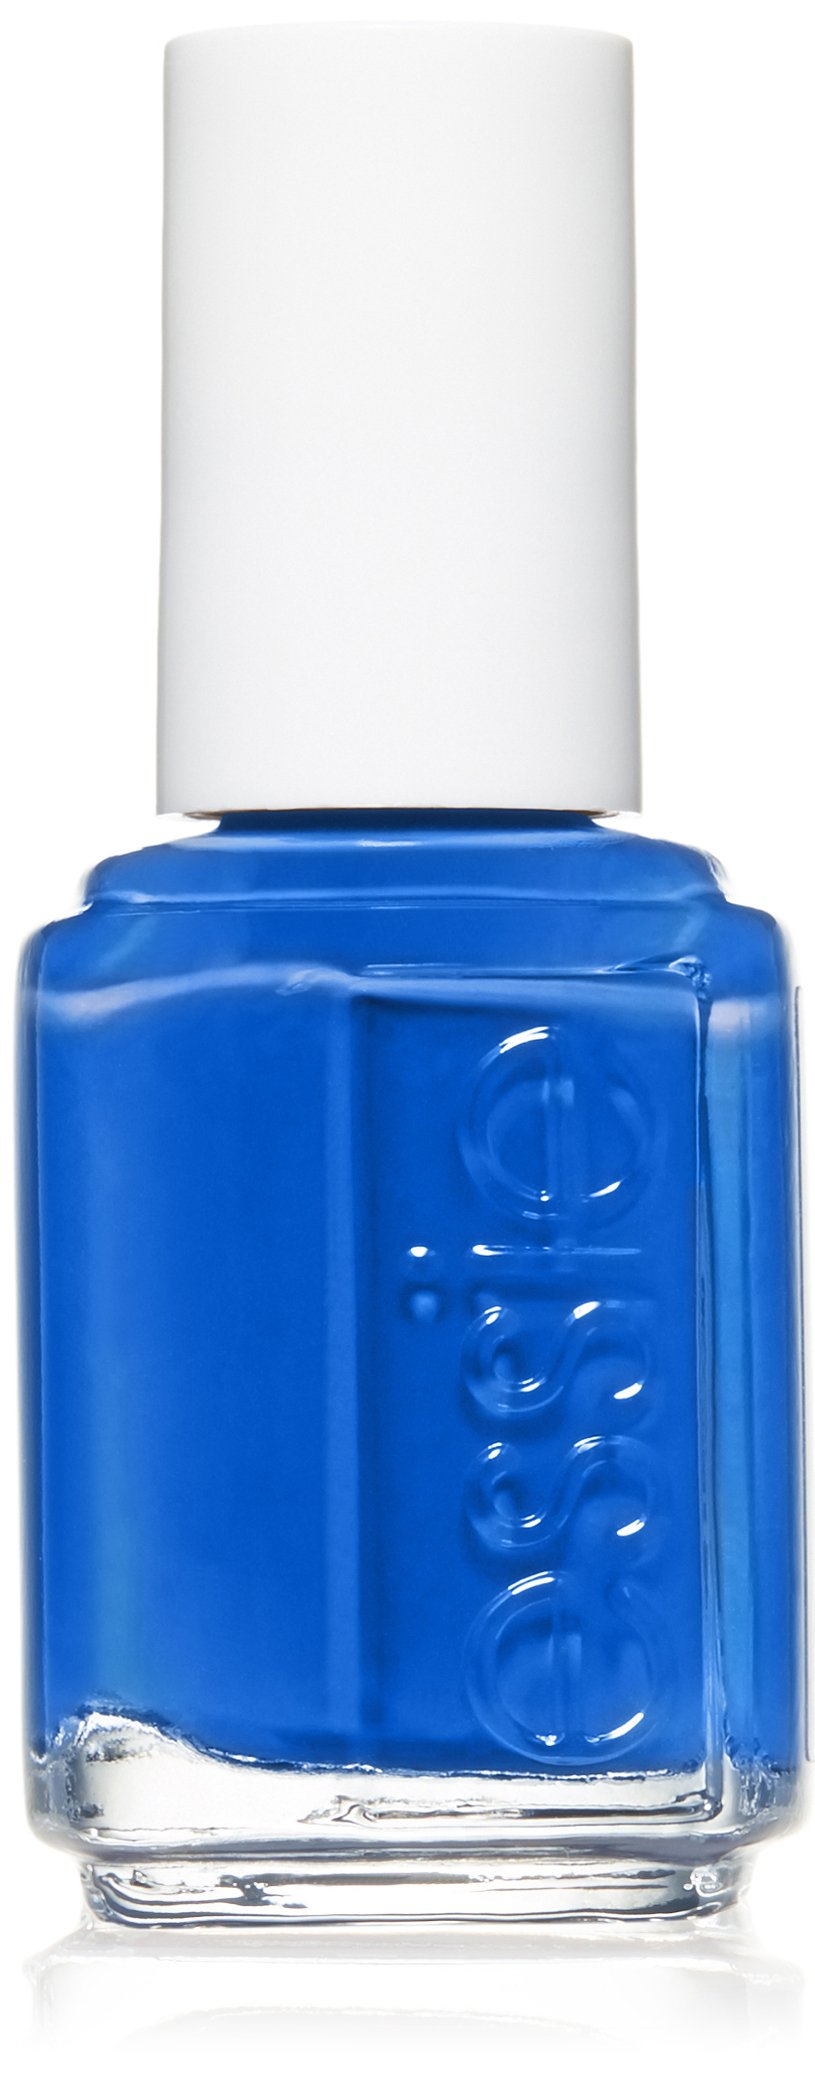 Amazon.com: essie Nail Color Polish, The More The Merrier: Beauty